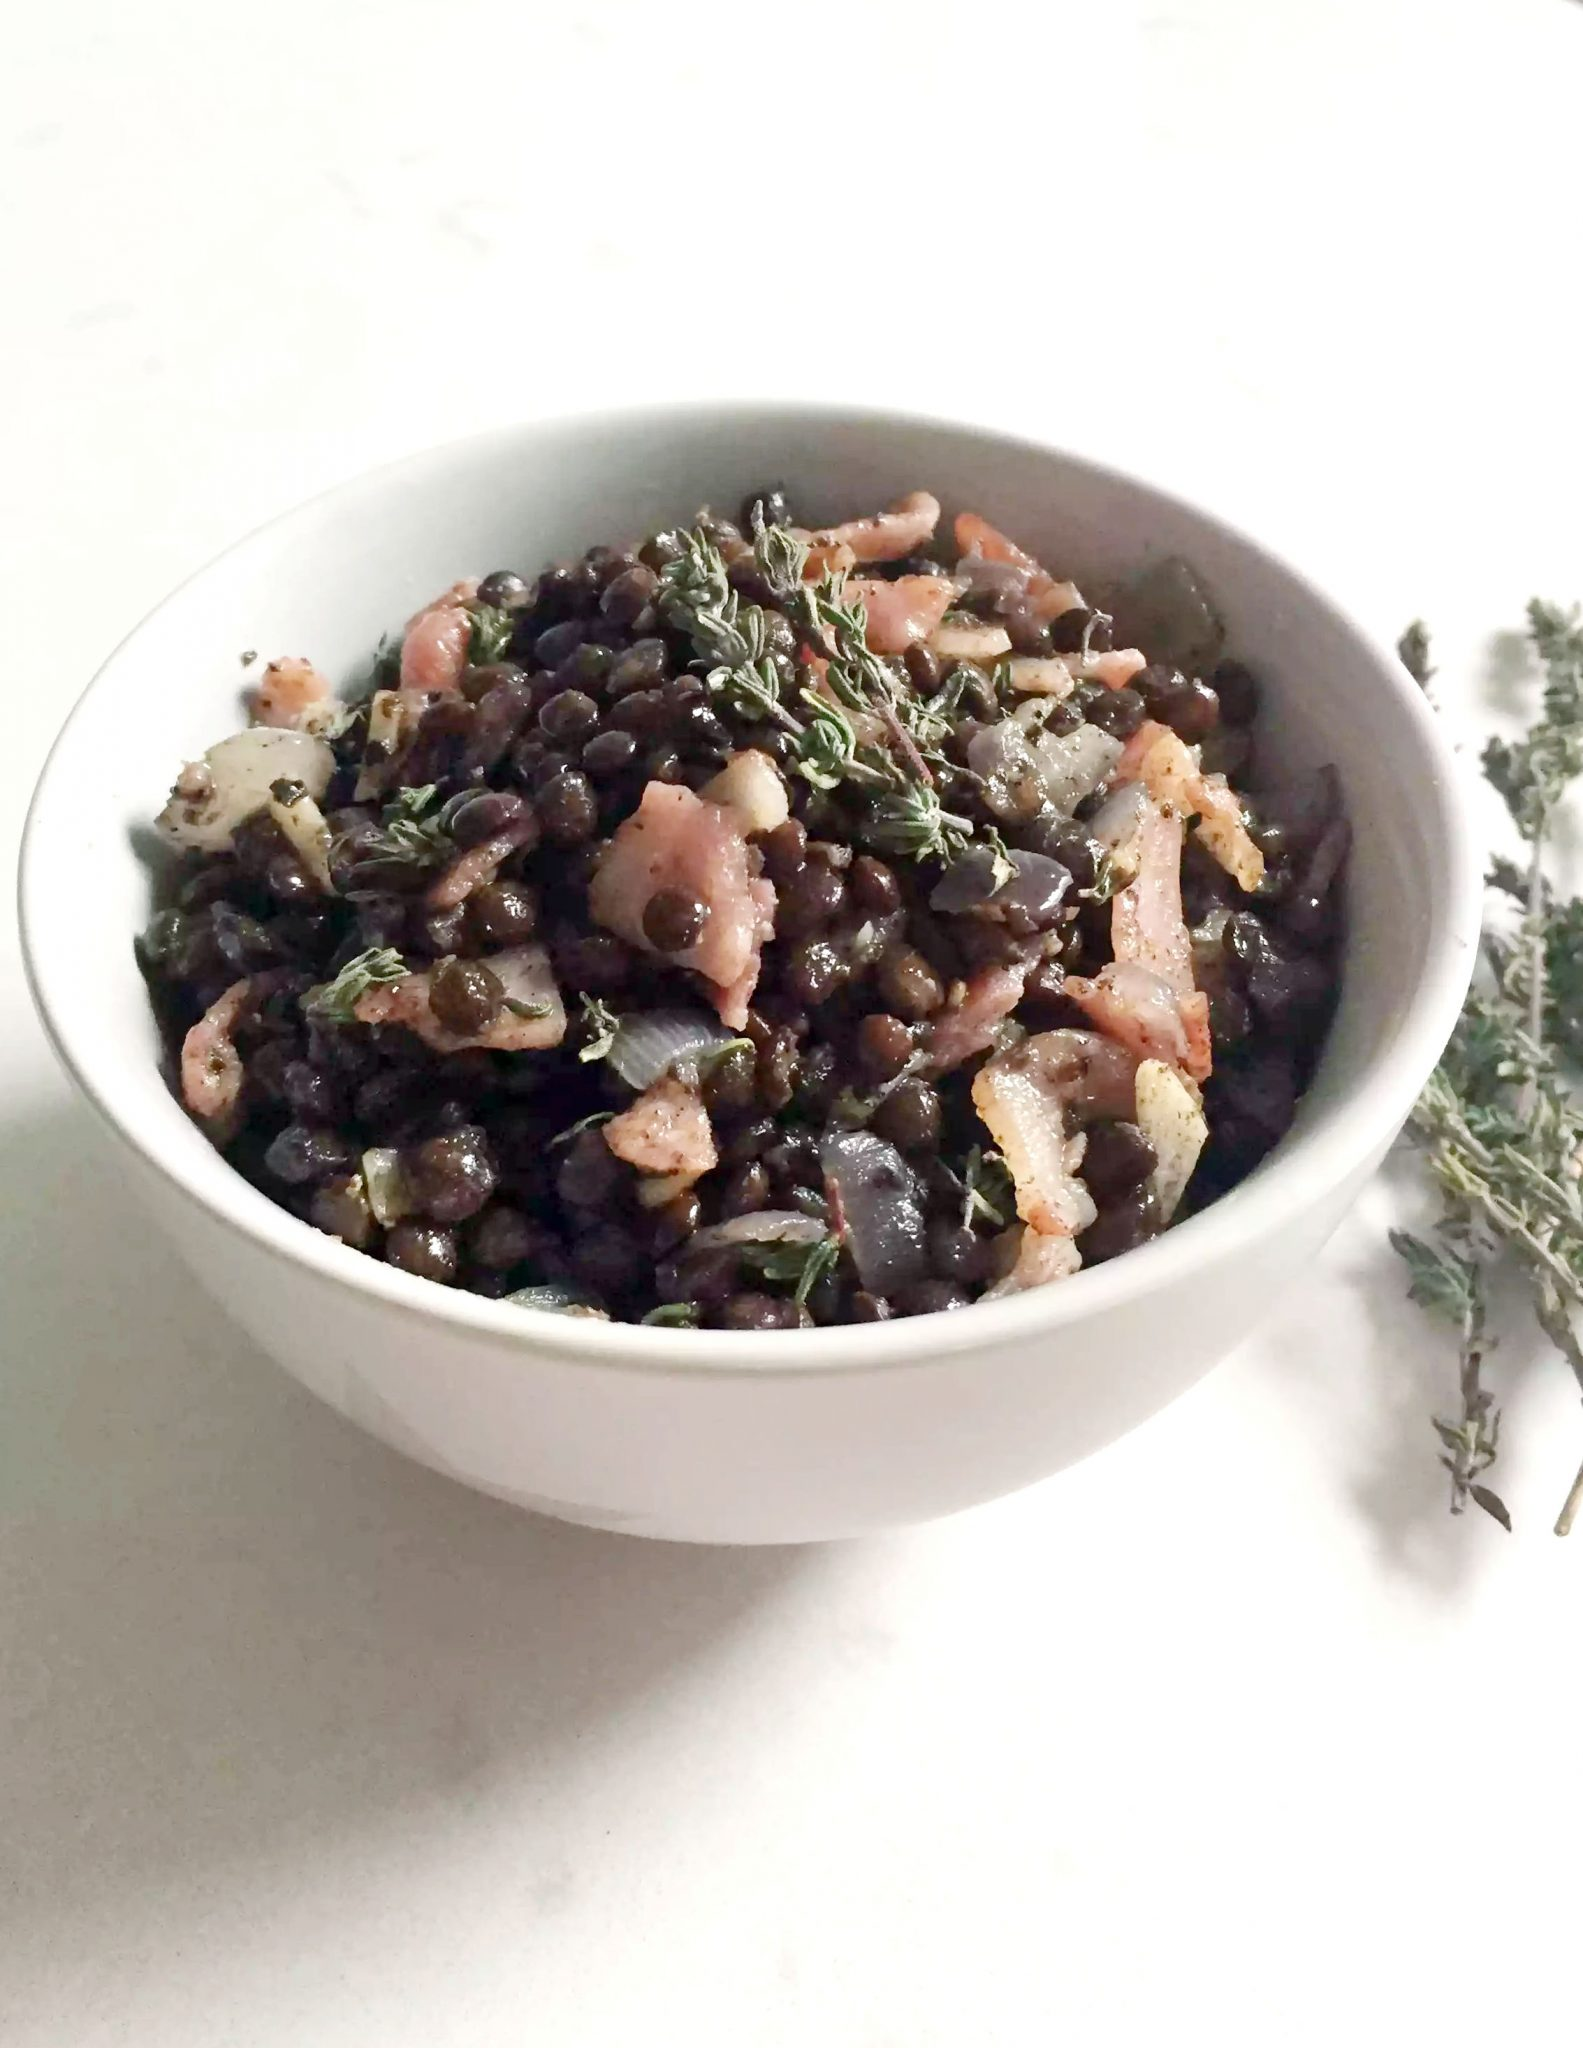 Warm Lentil Bacon Salad with Shallots & Fresh Thyme